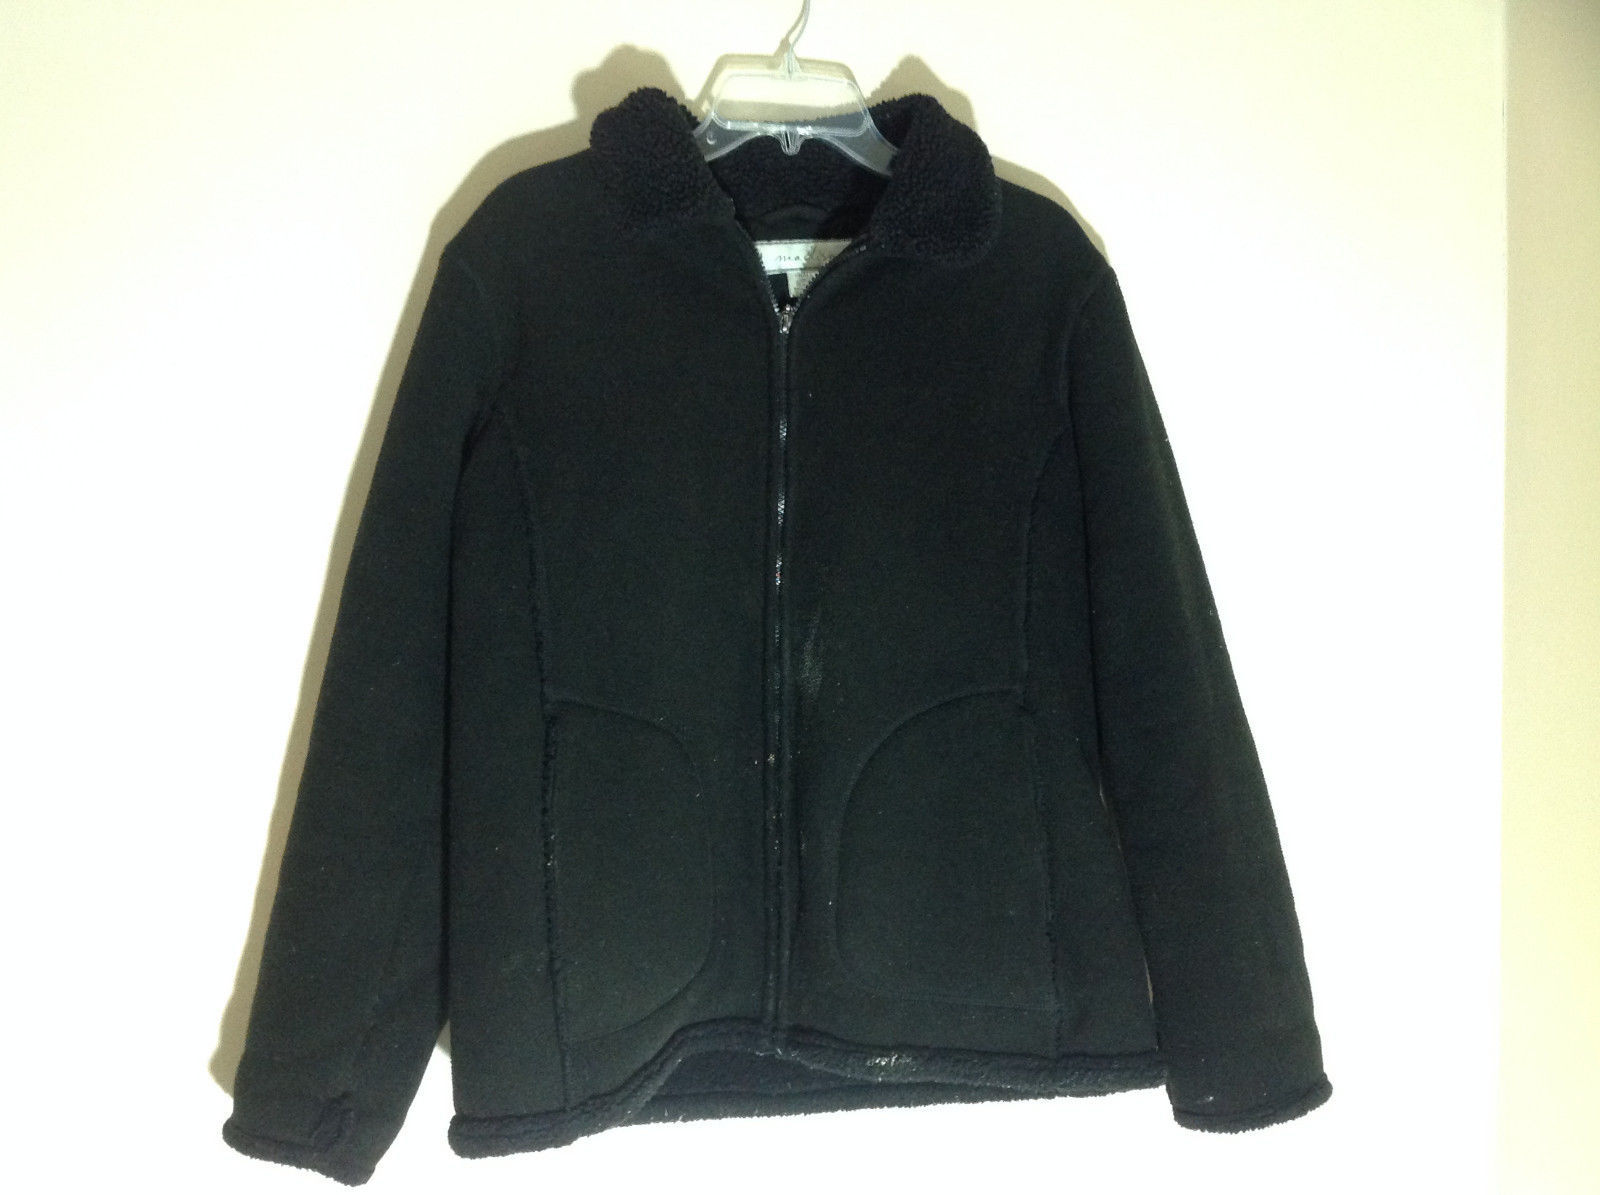 Madison Black Zip Up Fuzzy Winter Jacket Front Pockets Very Thick Size Small